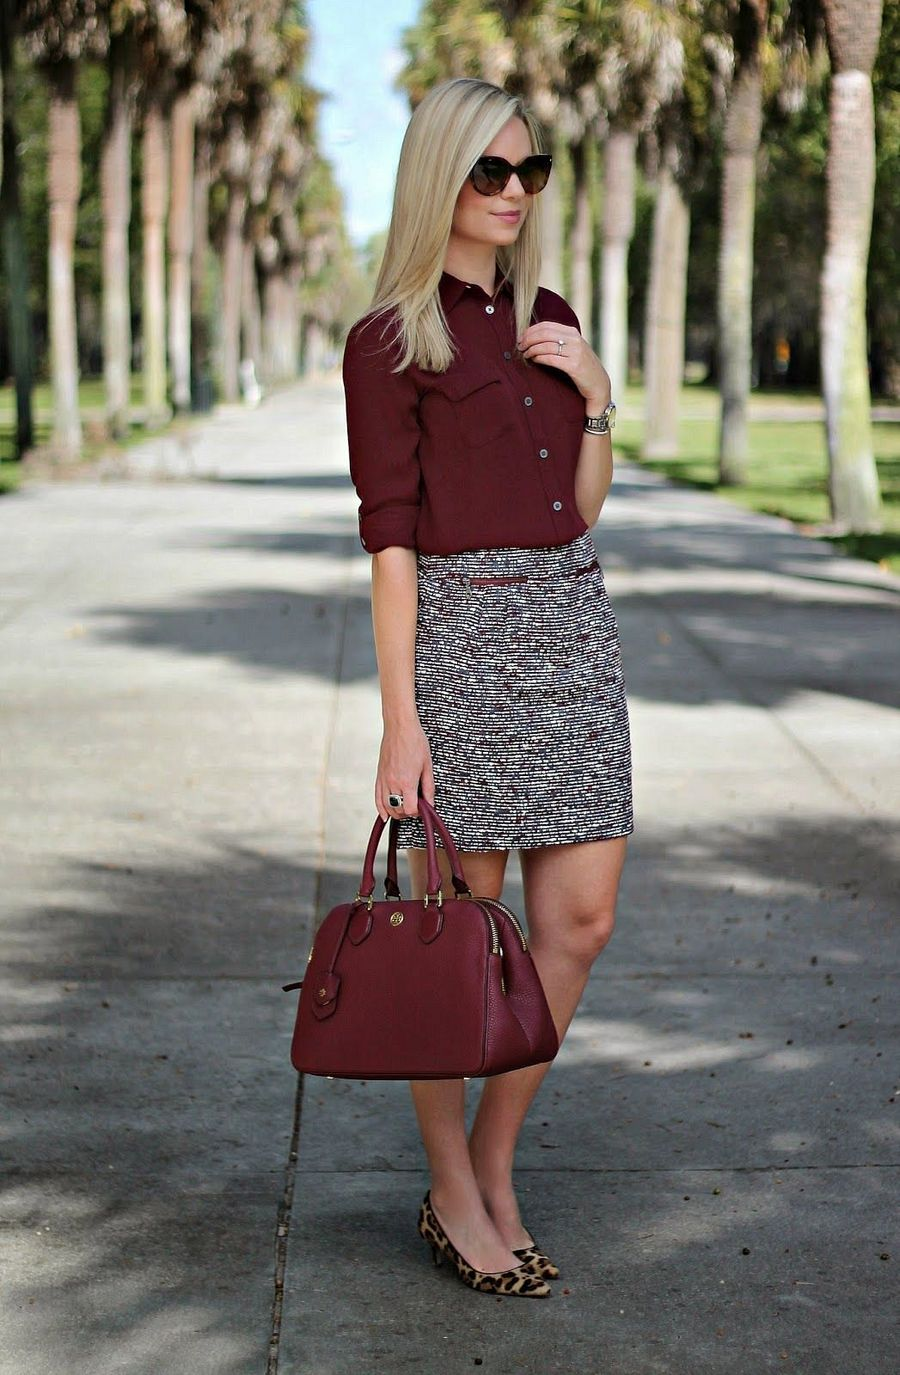 Skirt trends ideas for winter outfits this year 58